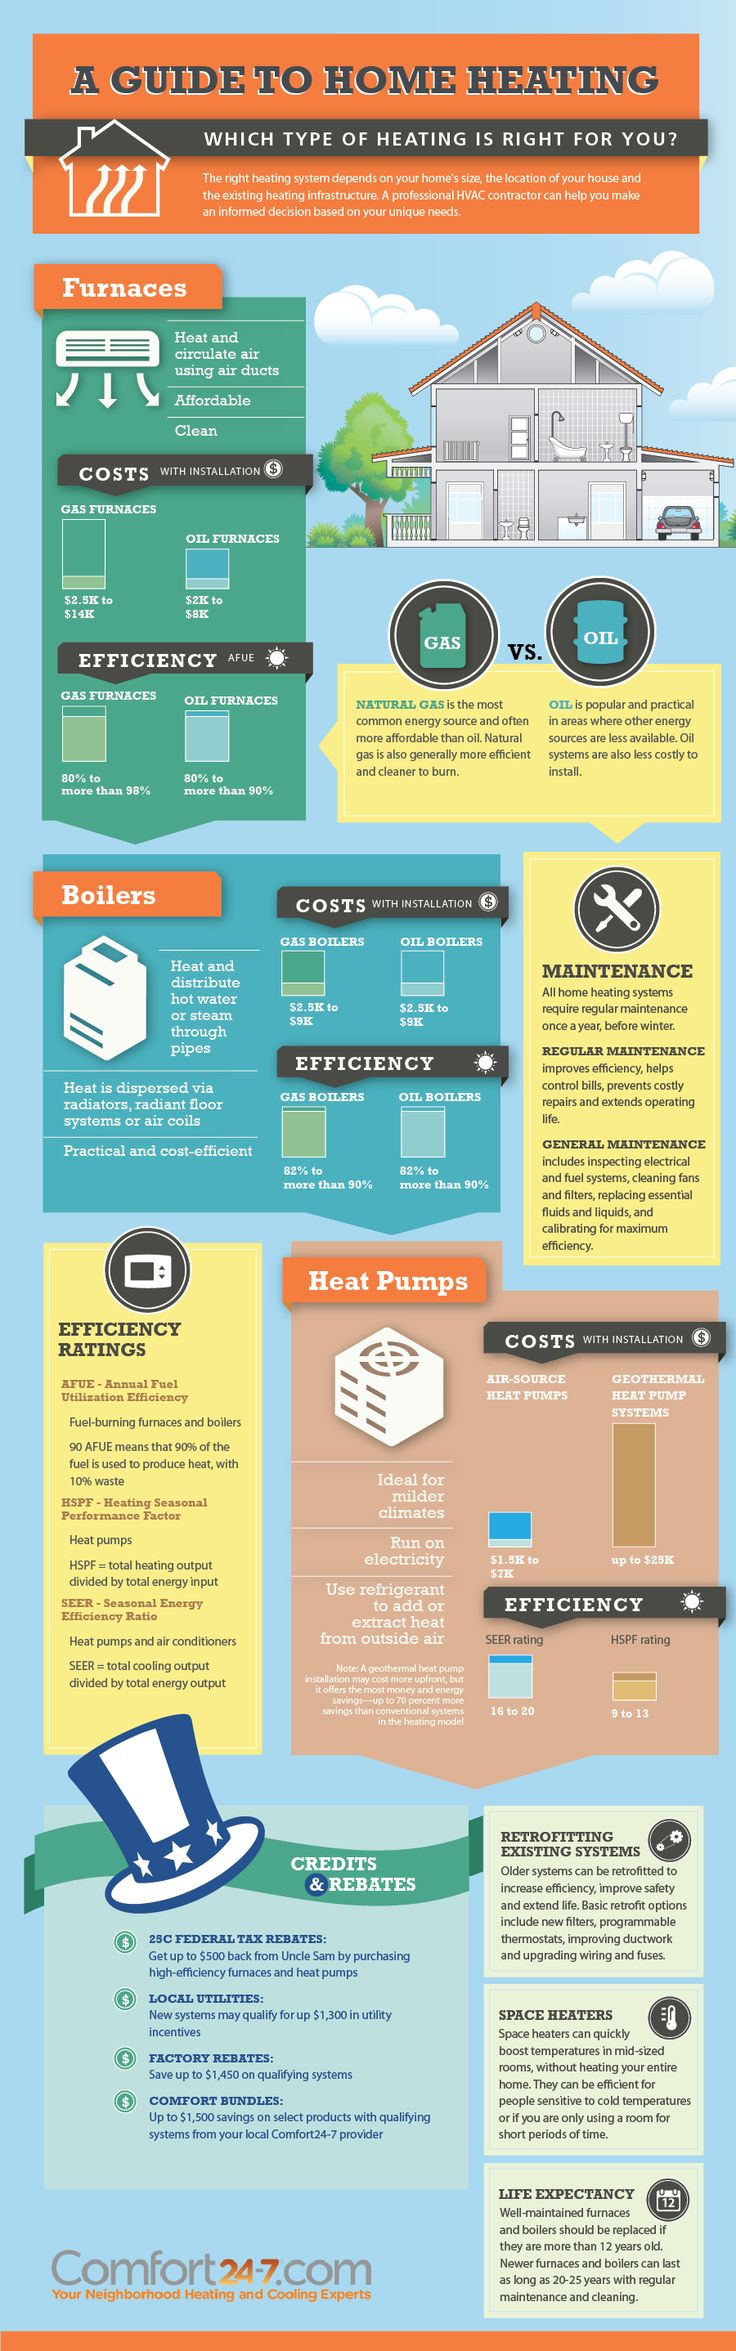 A guide to home heating. Learn about different types of